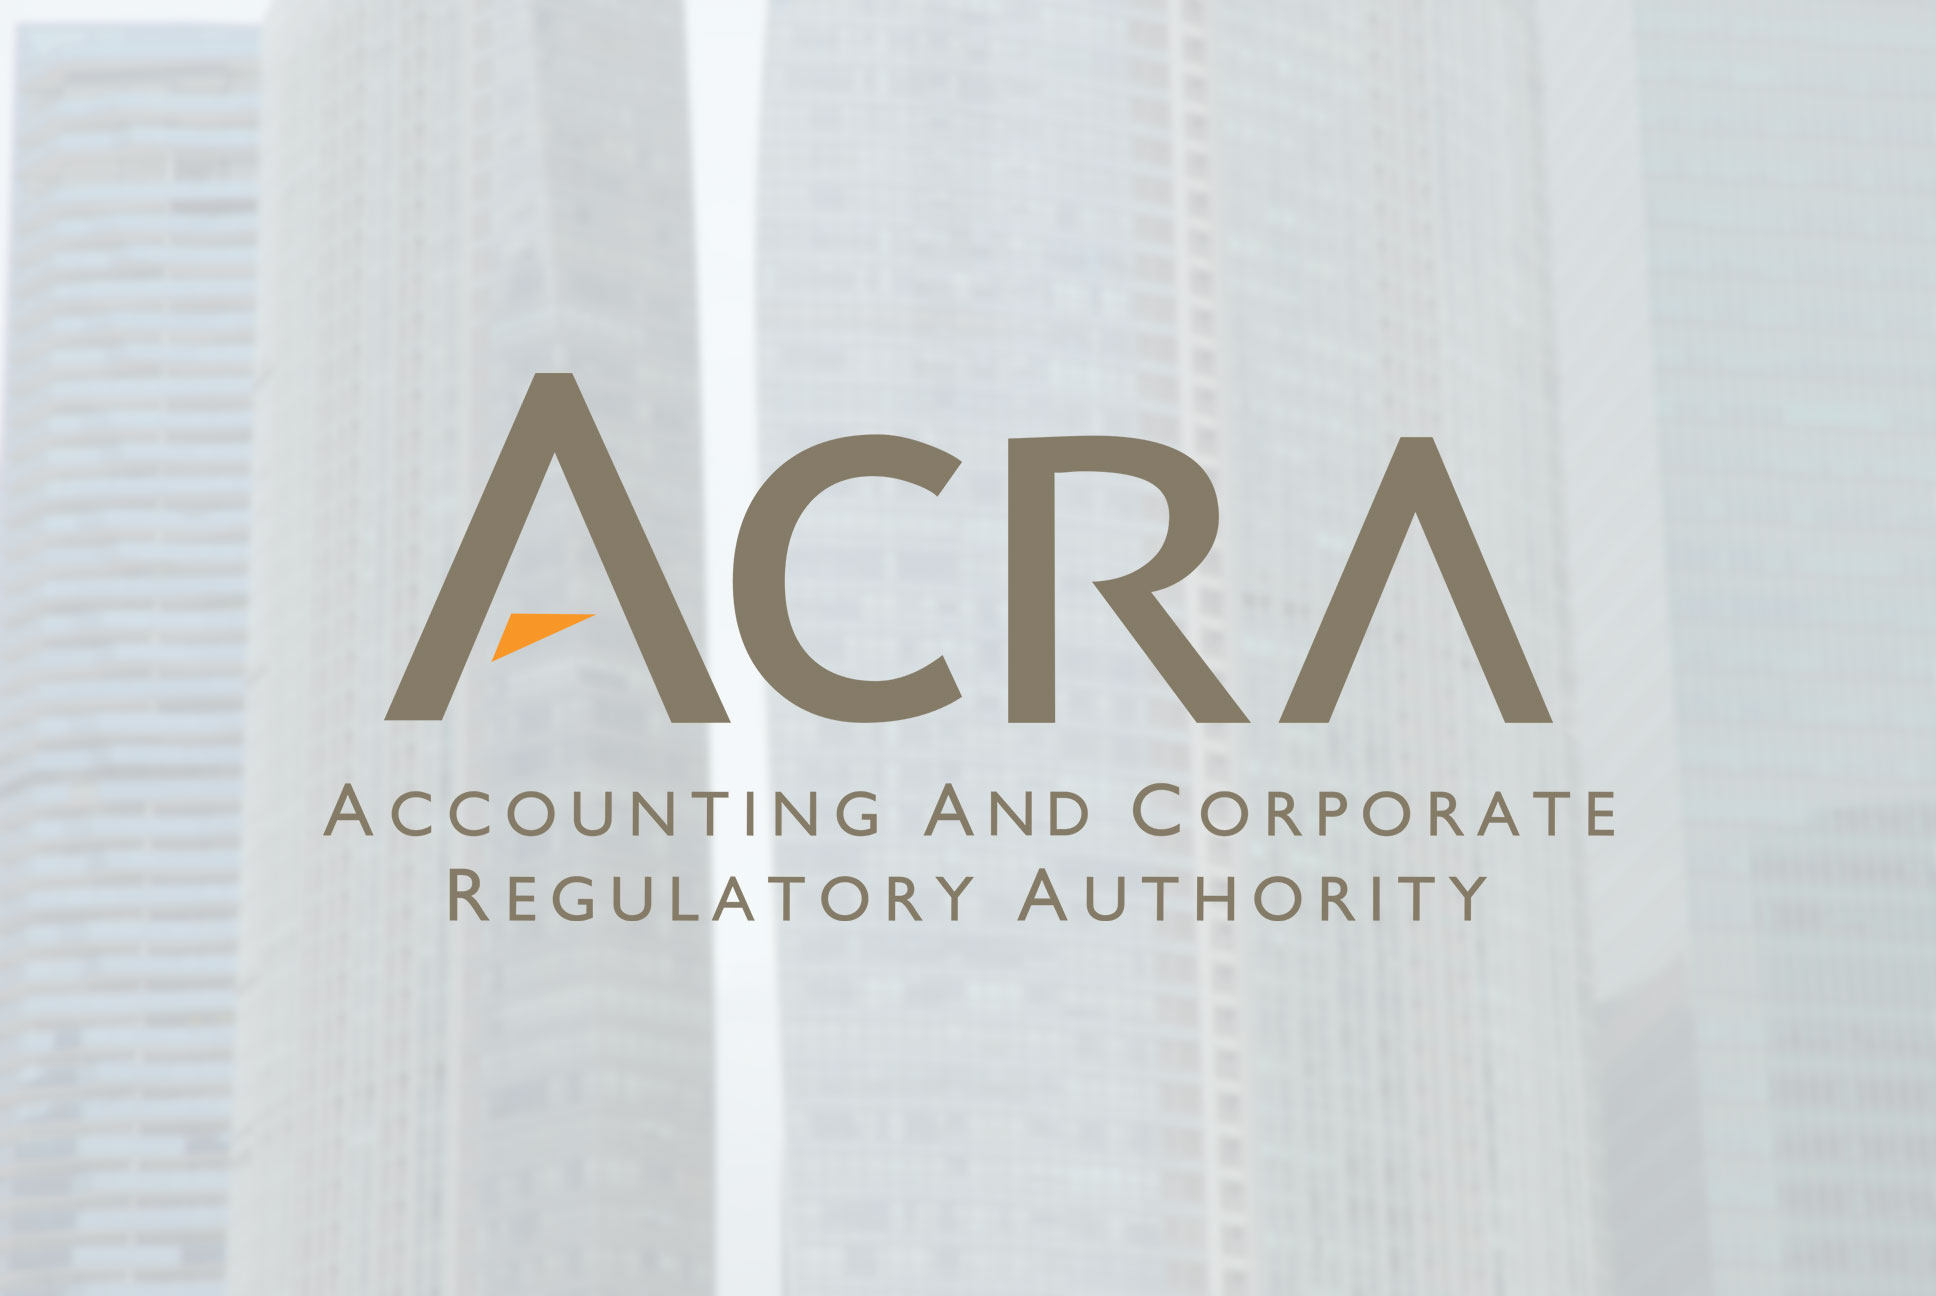 acra logo overlaying corporate buildings concept for small company audit exemptions in Singapore